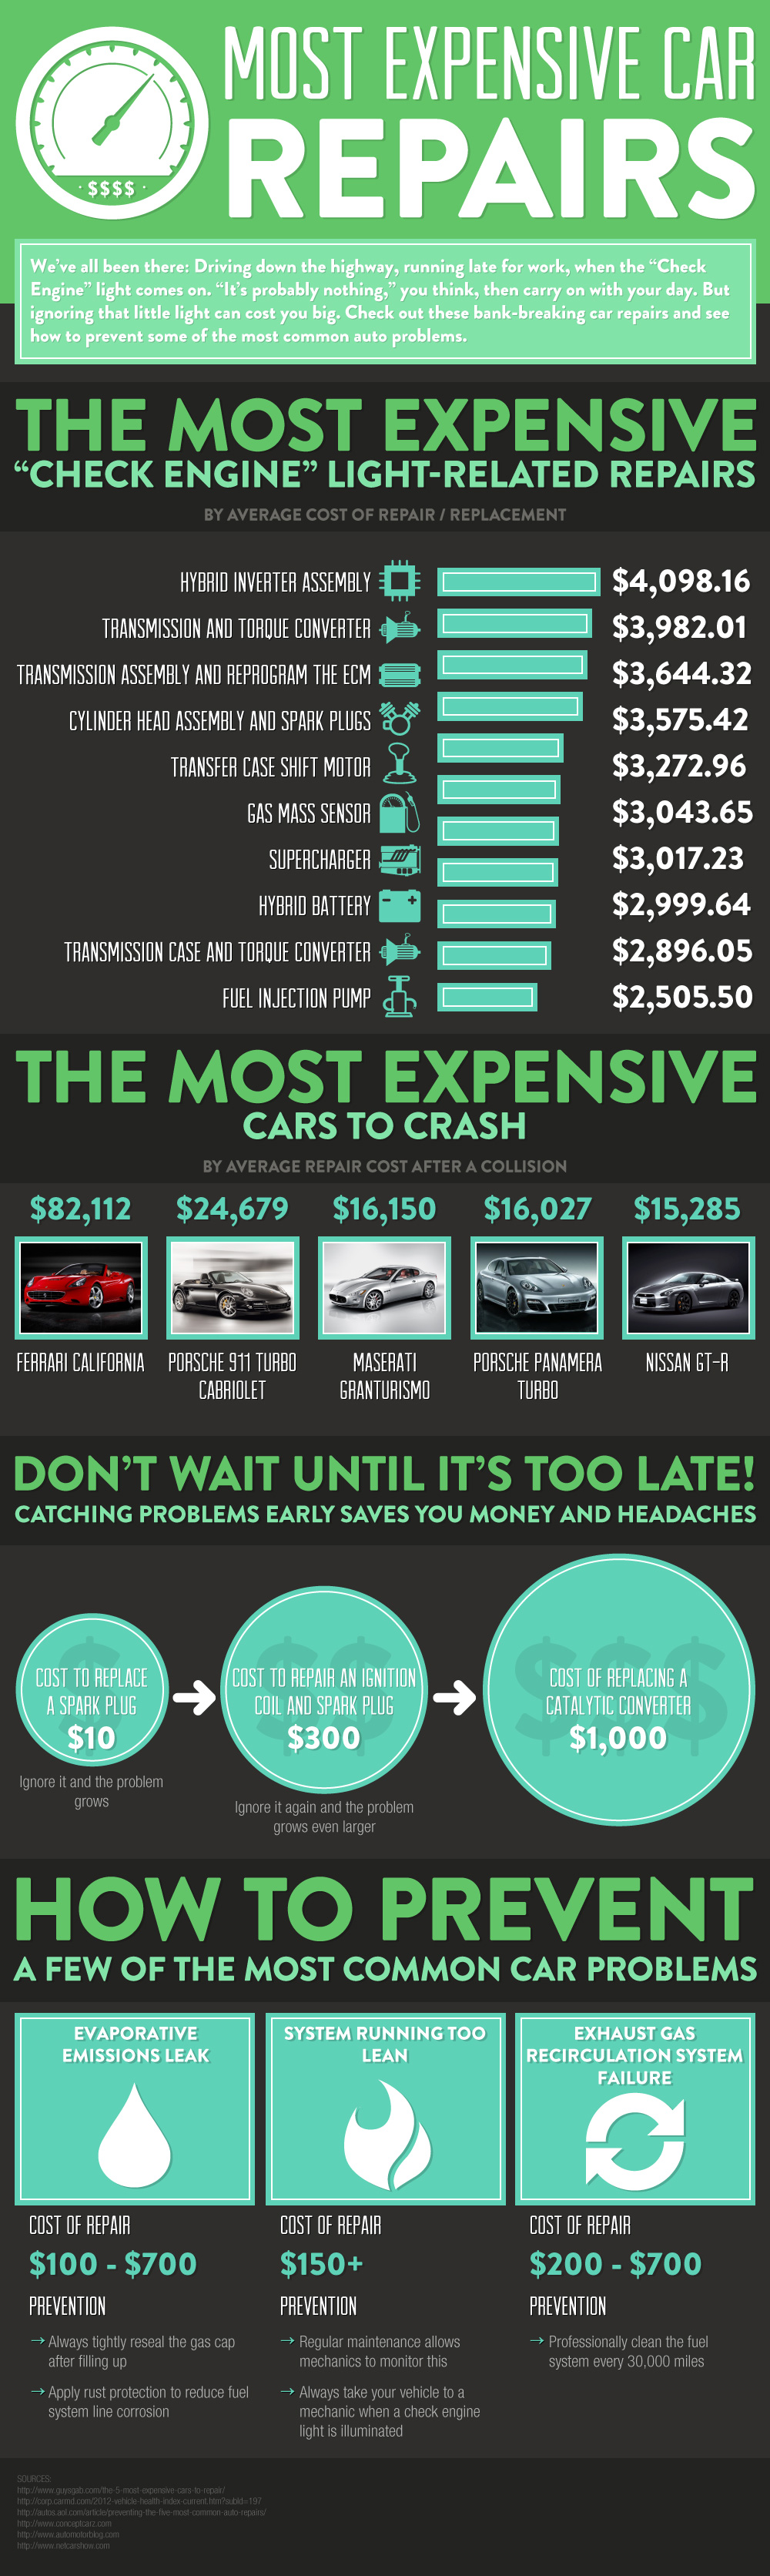 Most Expensive Car Repairs